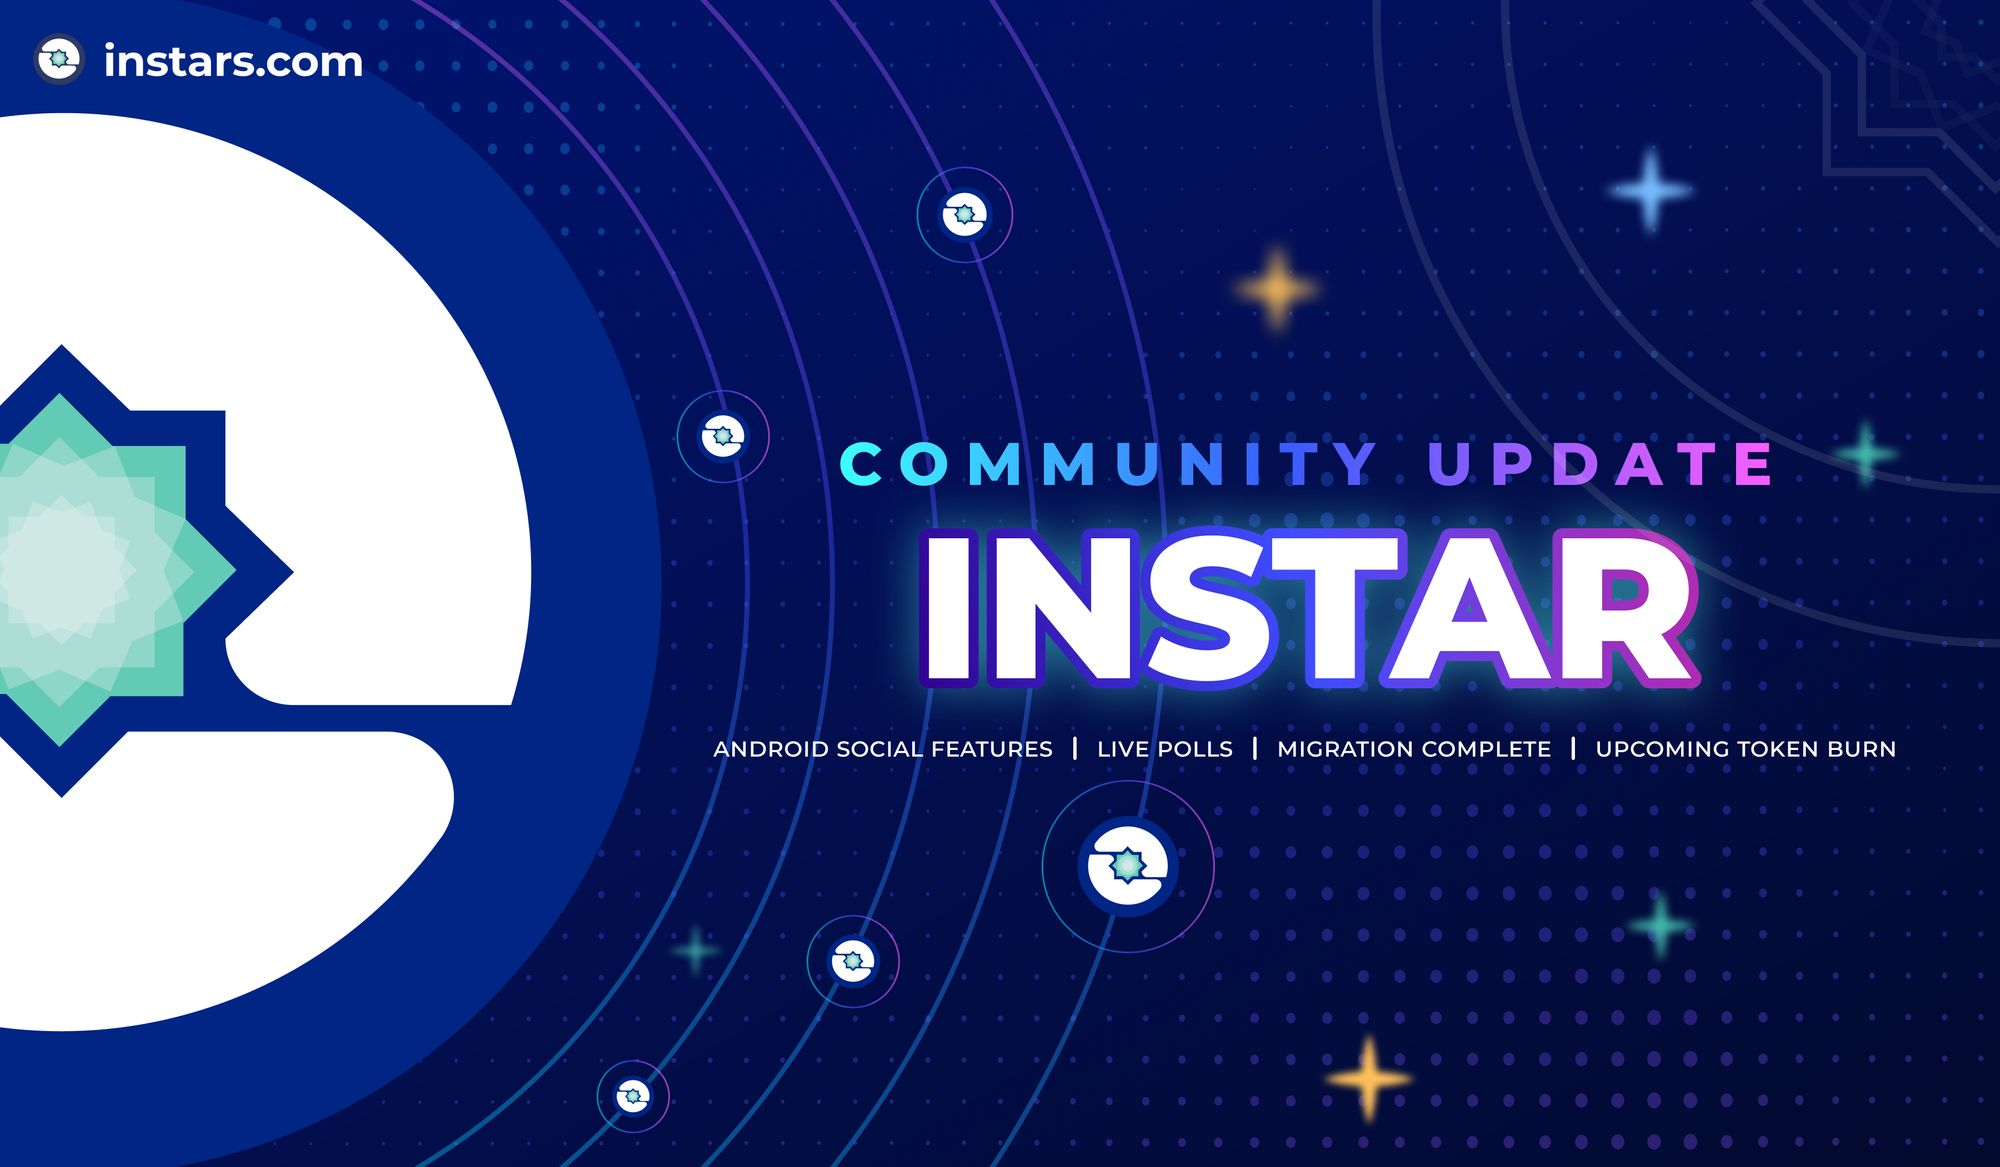 INSTAR Community Update: Android Social Features, Live Polls, Migration Complete, Planned ~30M INSTAR Burn 🔥